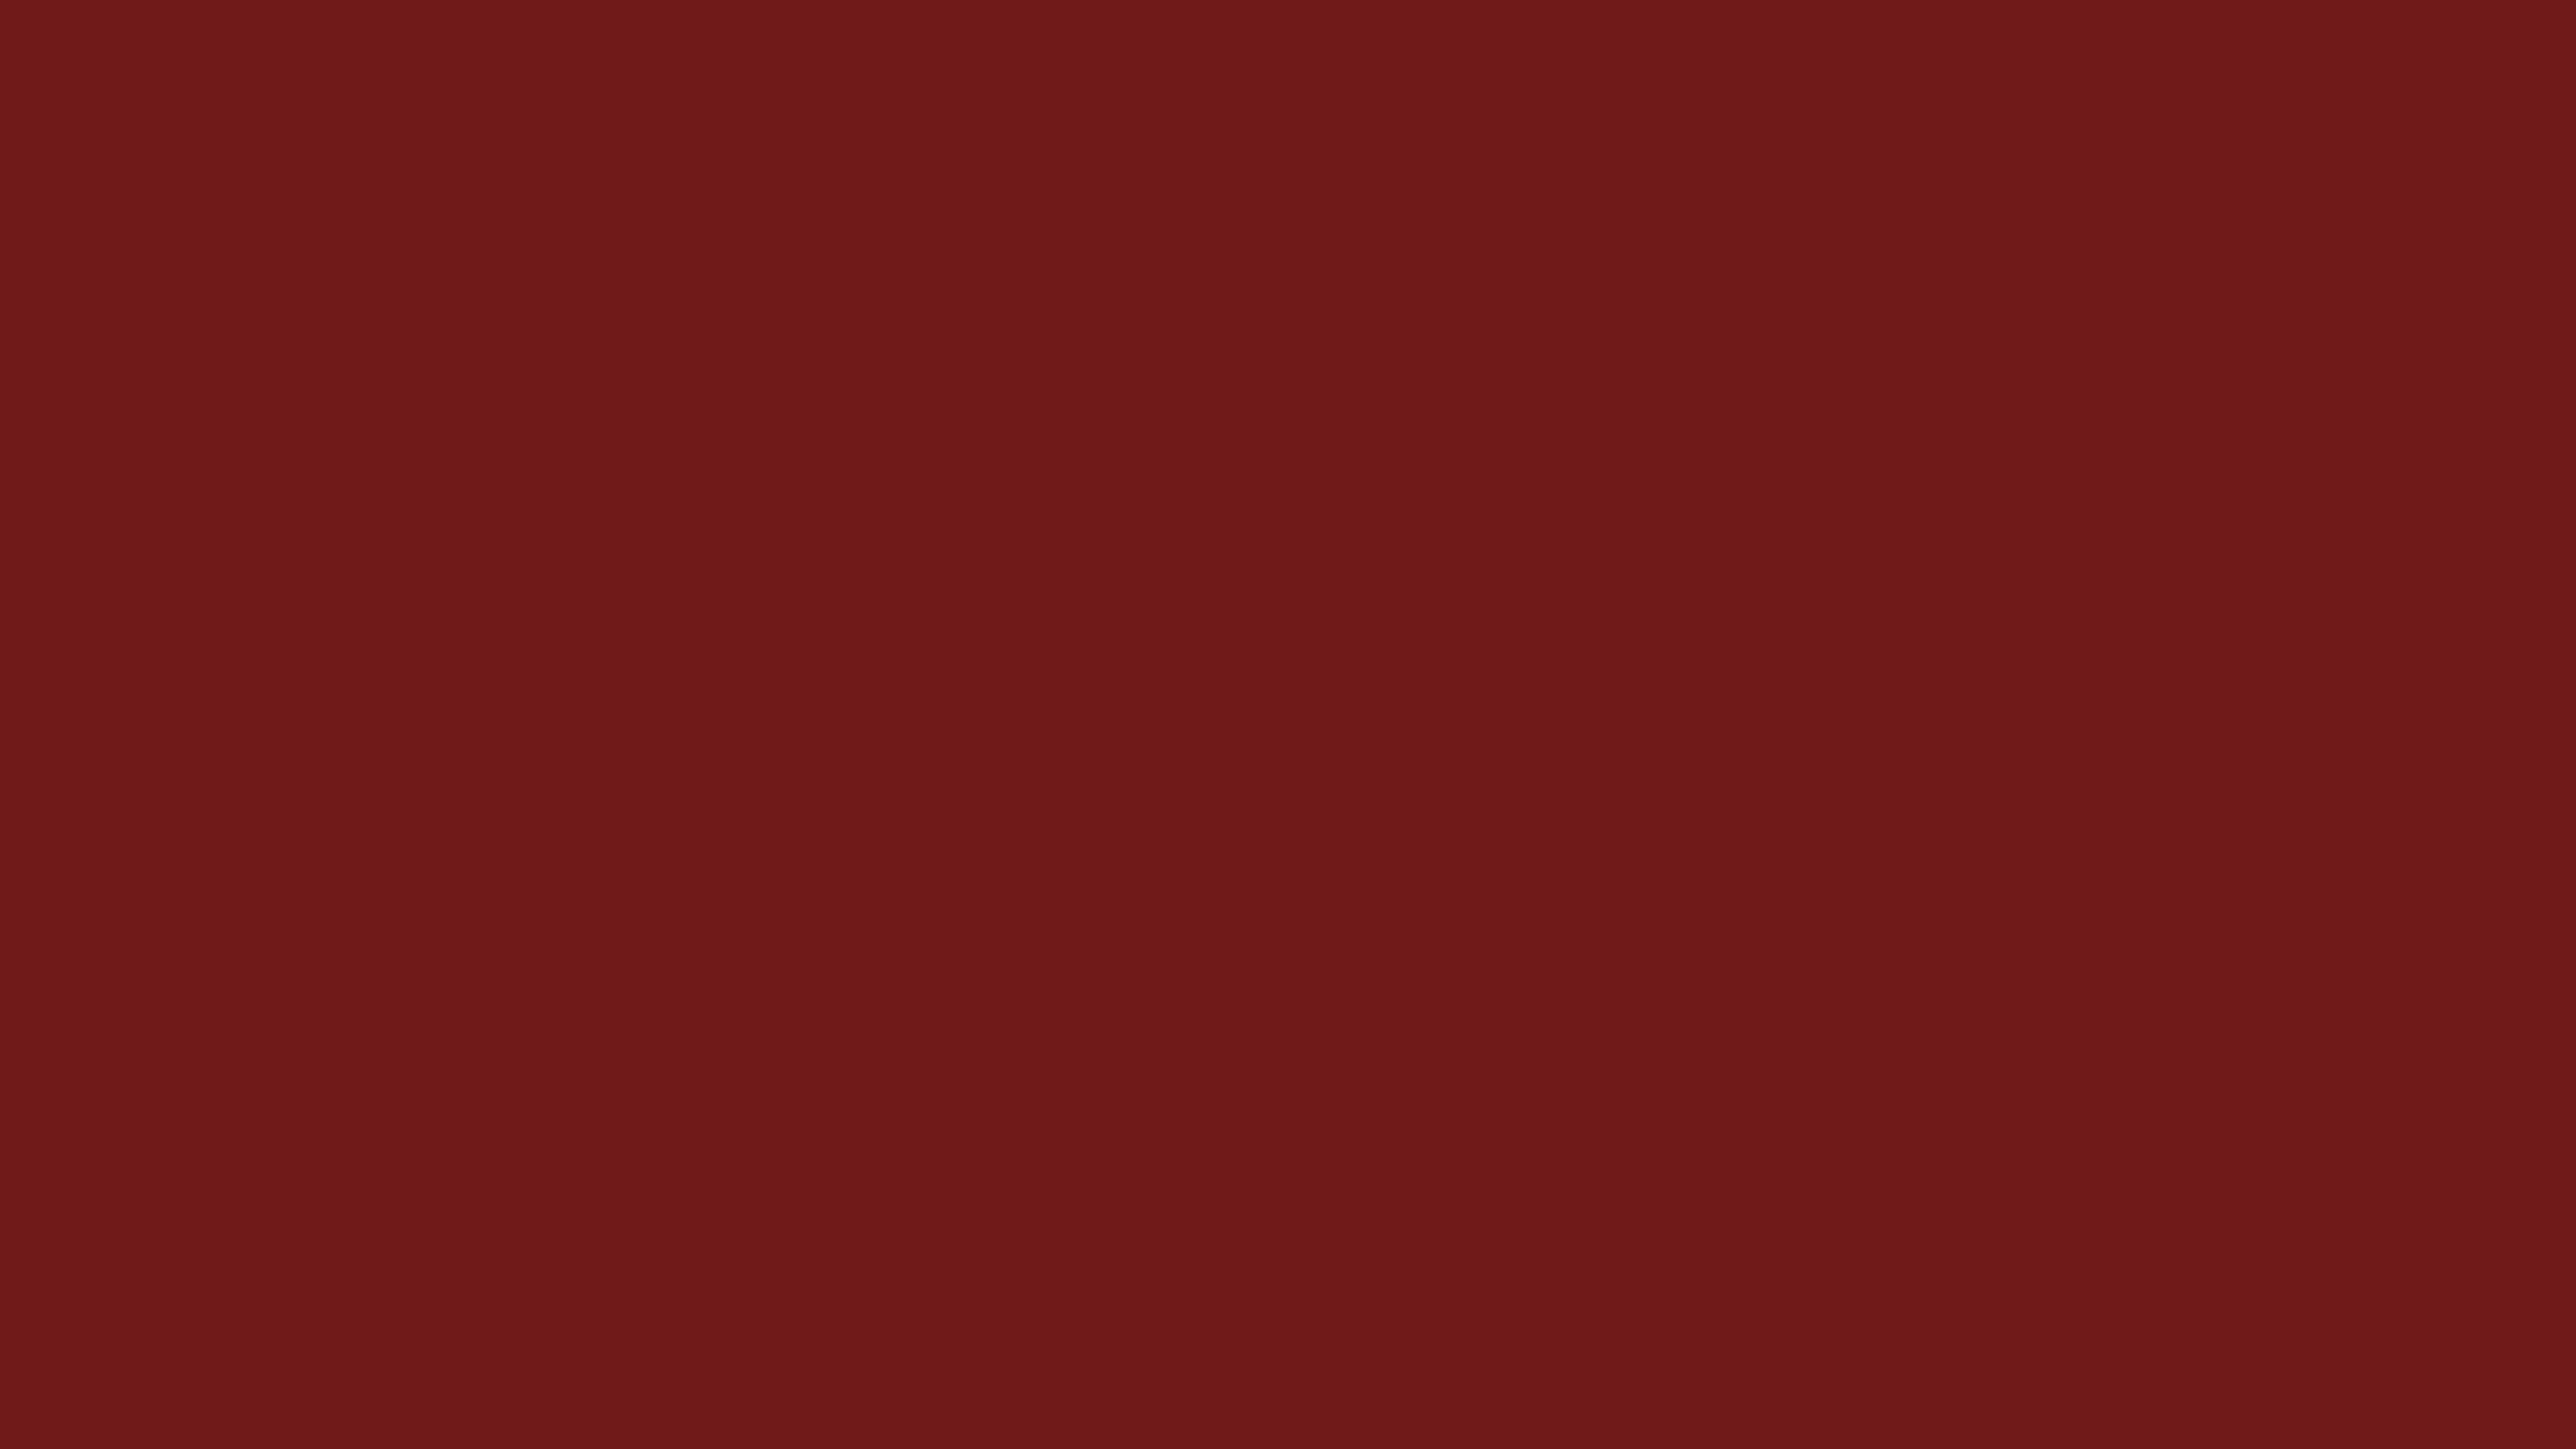 5120x2880 Persian Plum Solid Color Background 5120x2880